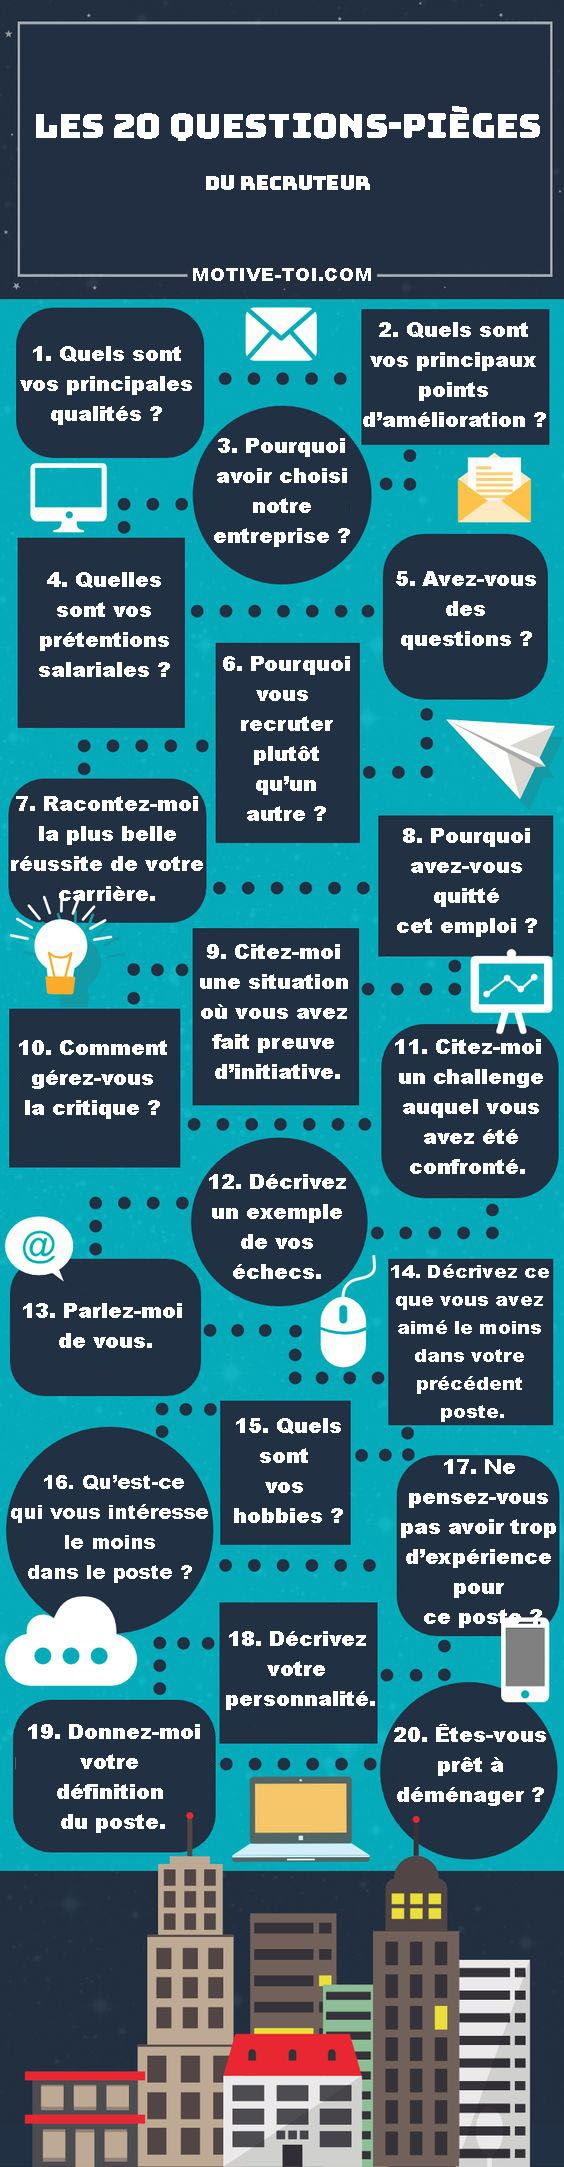 Dcouvrez le top 20 des questions piges poses